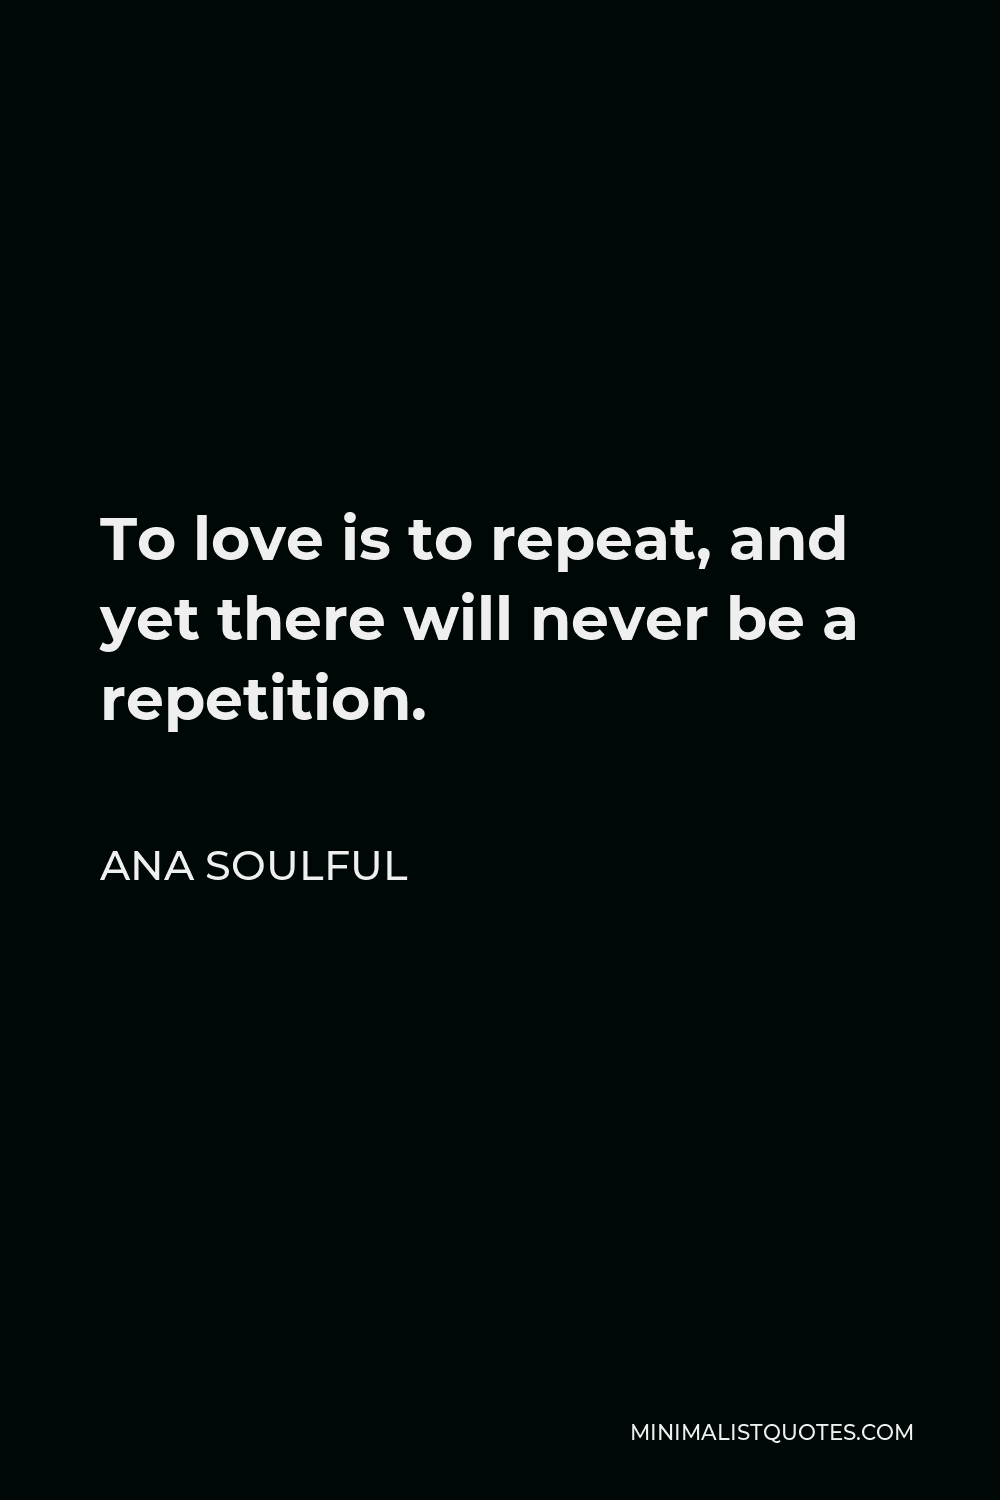 Ana Soulful Quote - To love is to repeat, and yet there will never be a repetition.